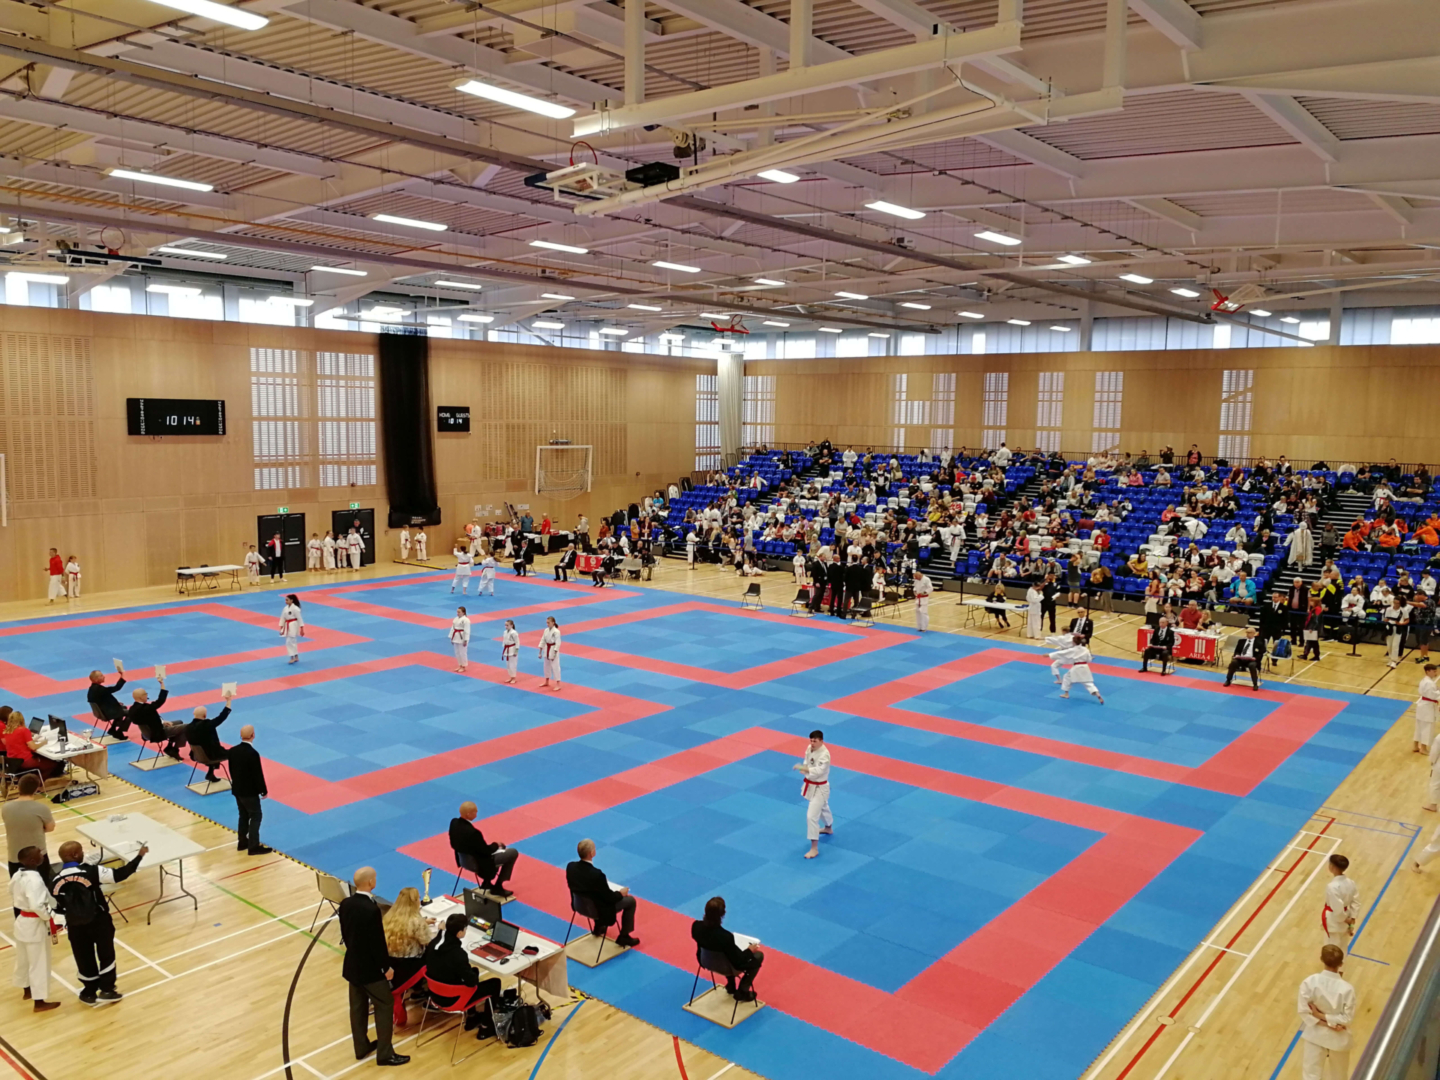 Indoor sports arena with 6 stages for wado karate